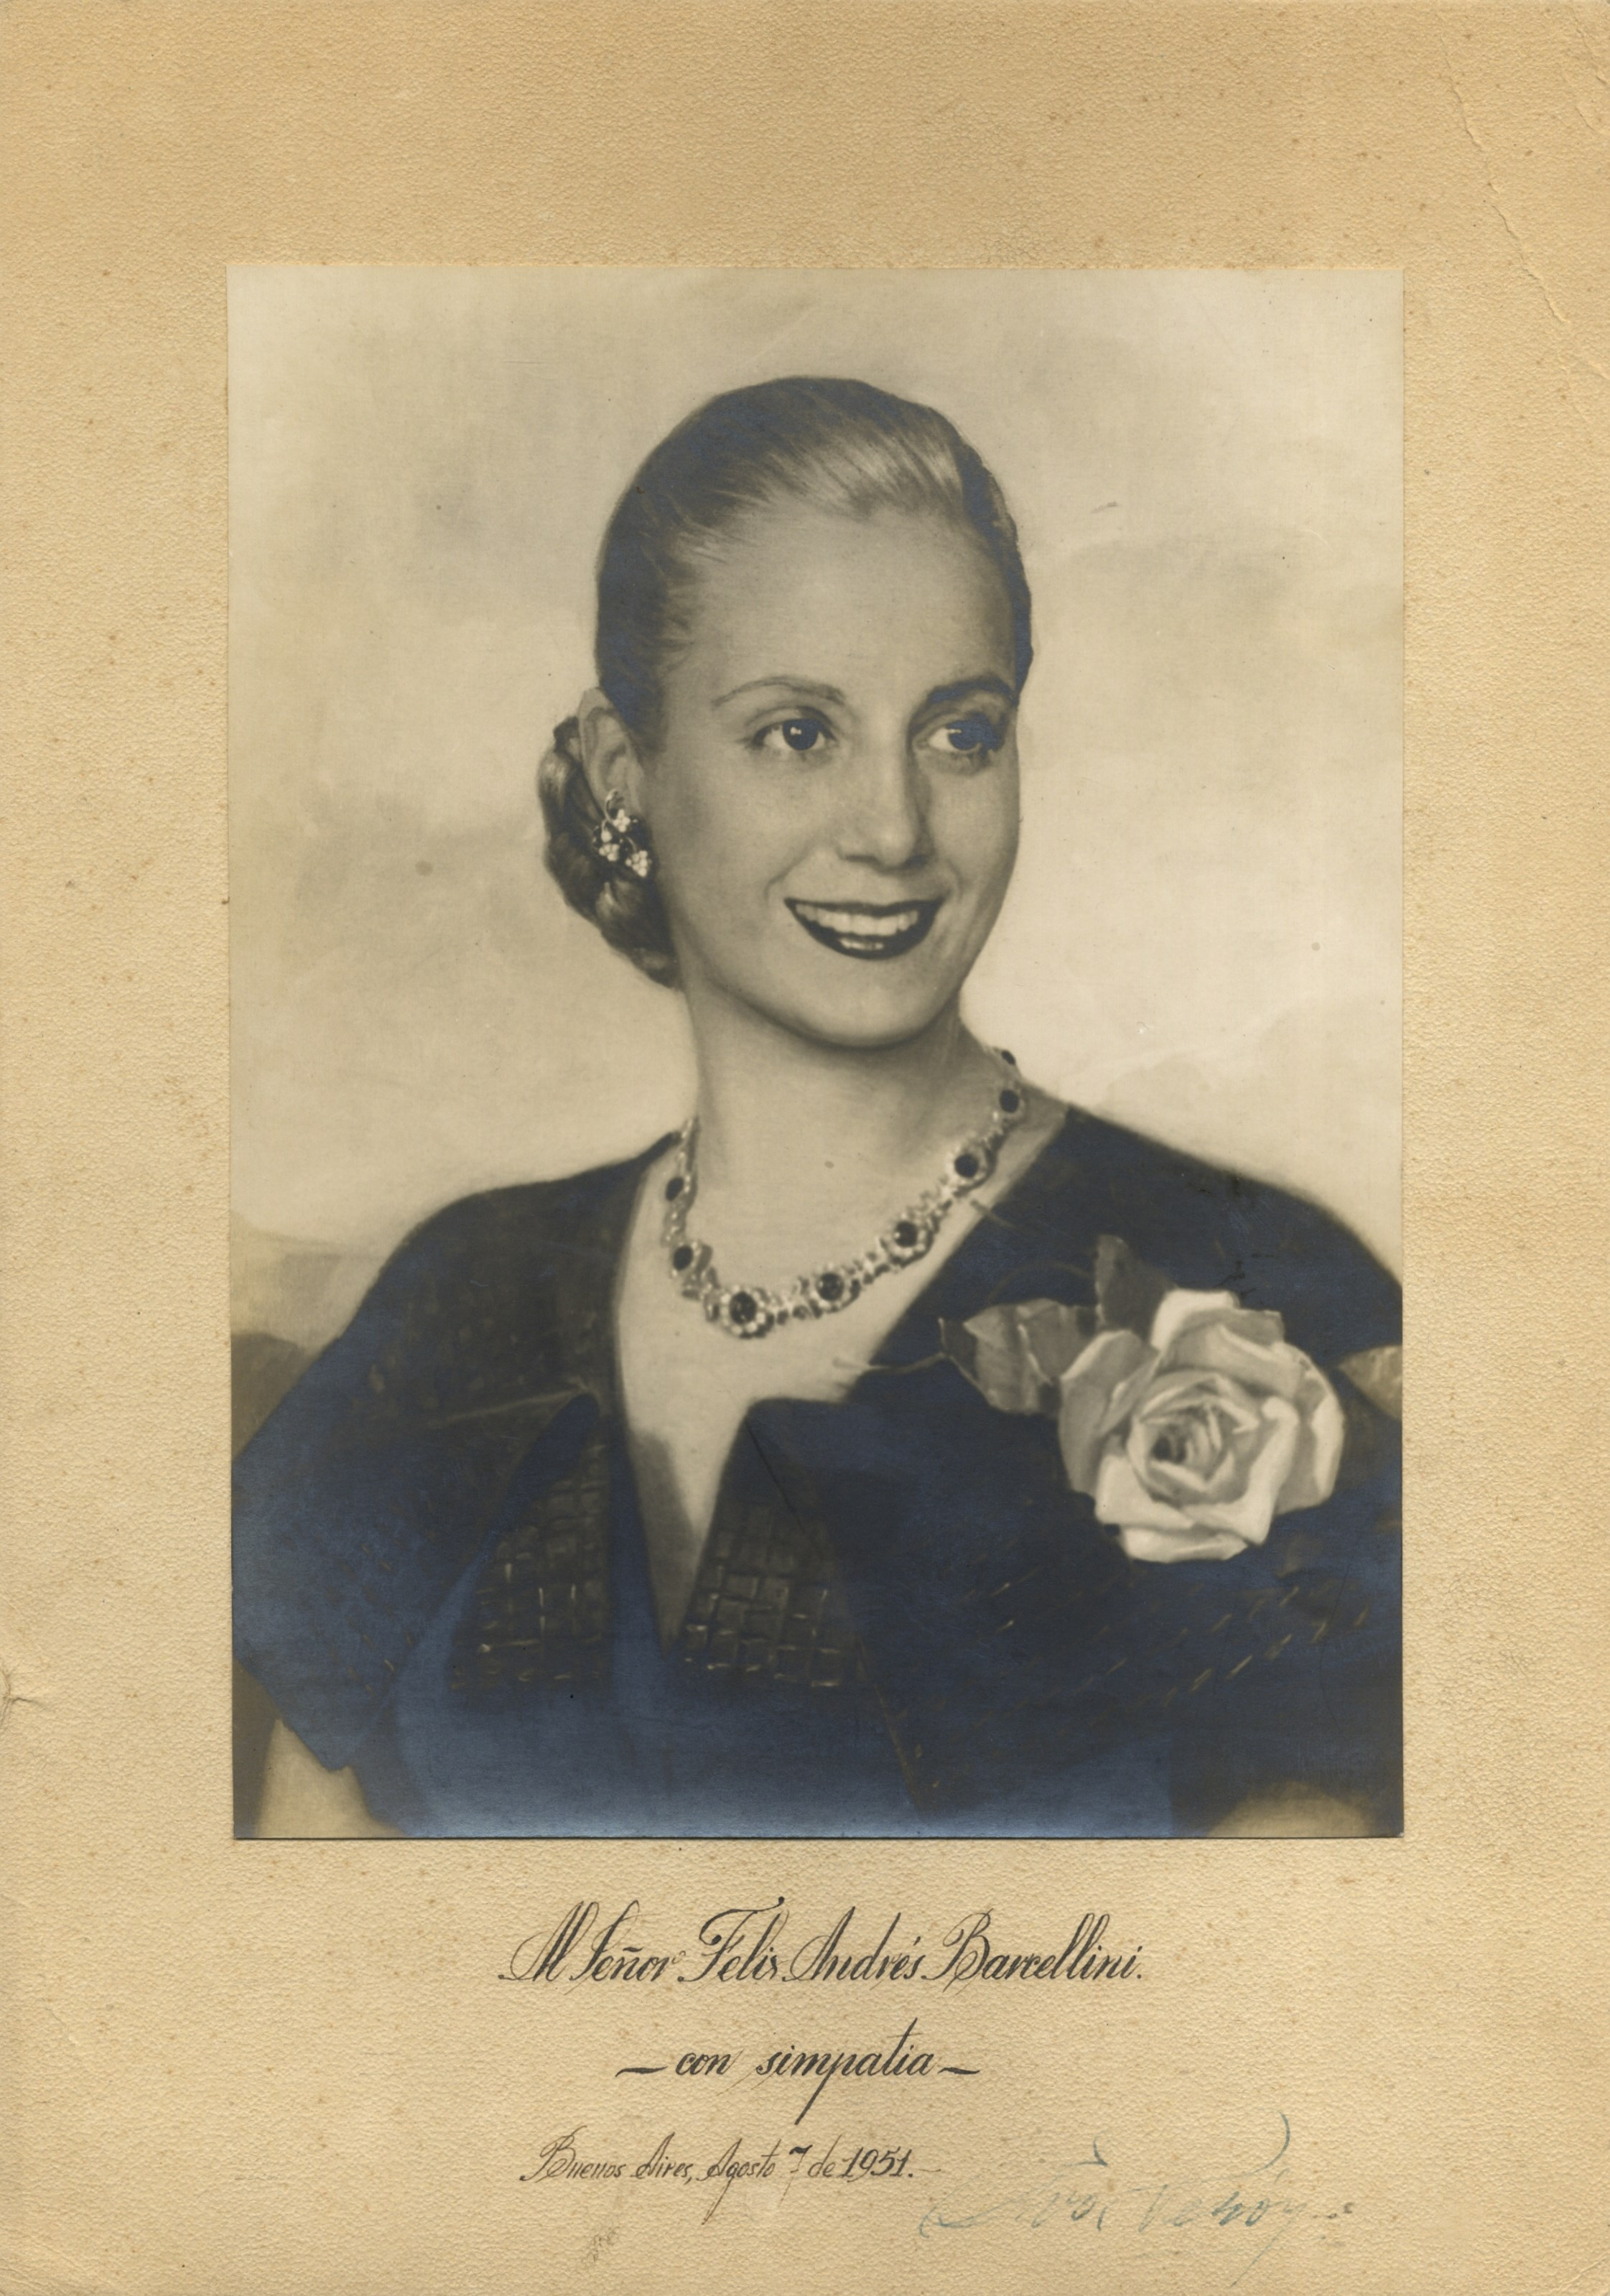 a biography of eva peron the first lady of argentina Eva peron used her position as the first lady of argentina she set up the foundation, fundacion maria eva duarte de peron on july 8, 1948, with seed money of 10,000 pesos to lend help to orphans and needy in the country the foundation grew within a short time and employed over 14,000 workers.